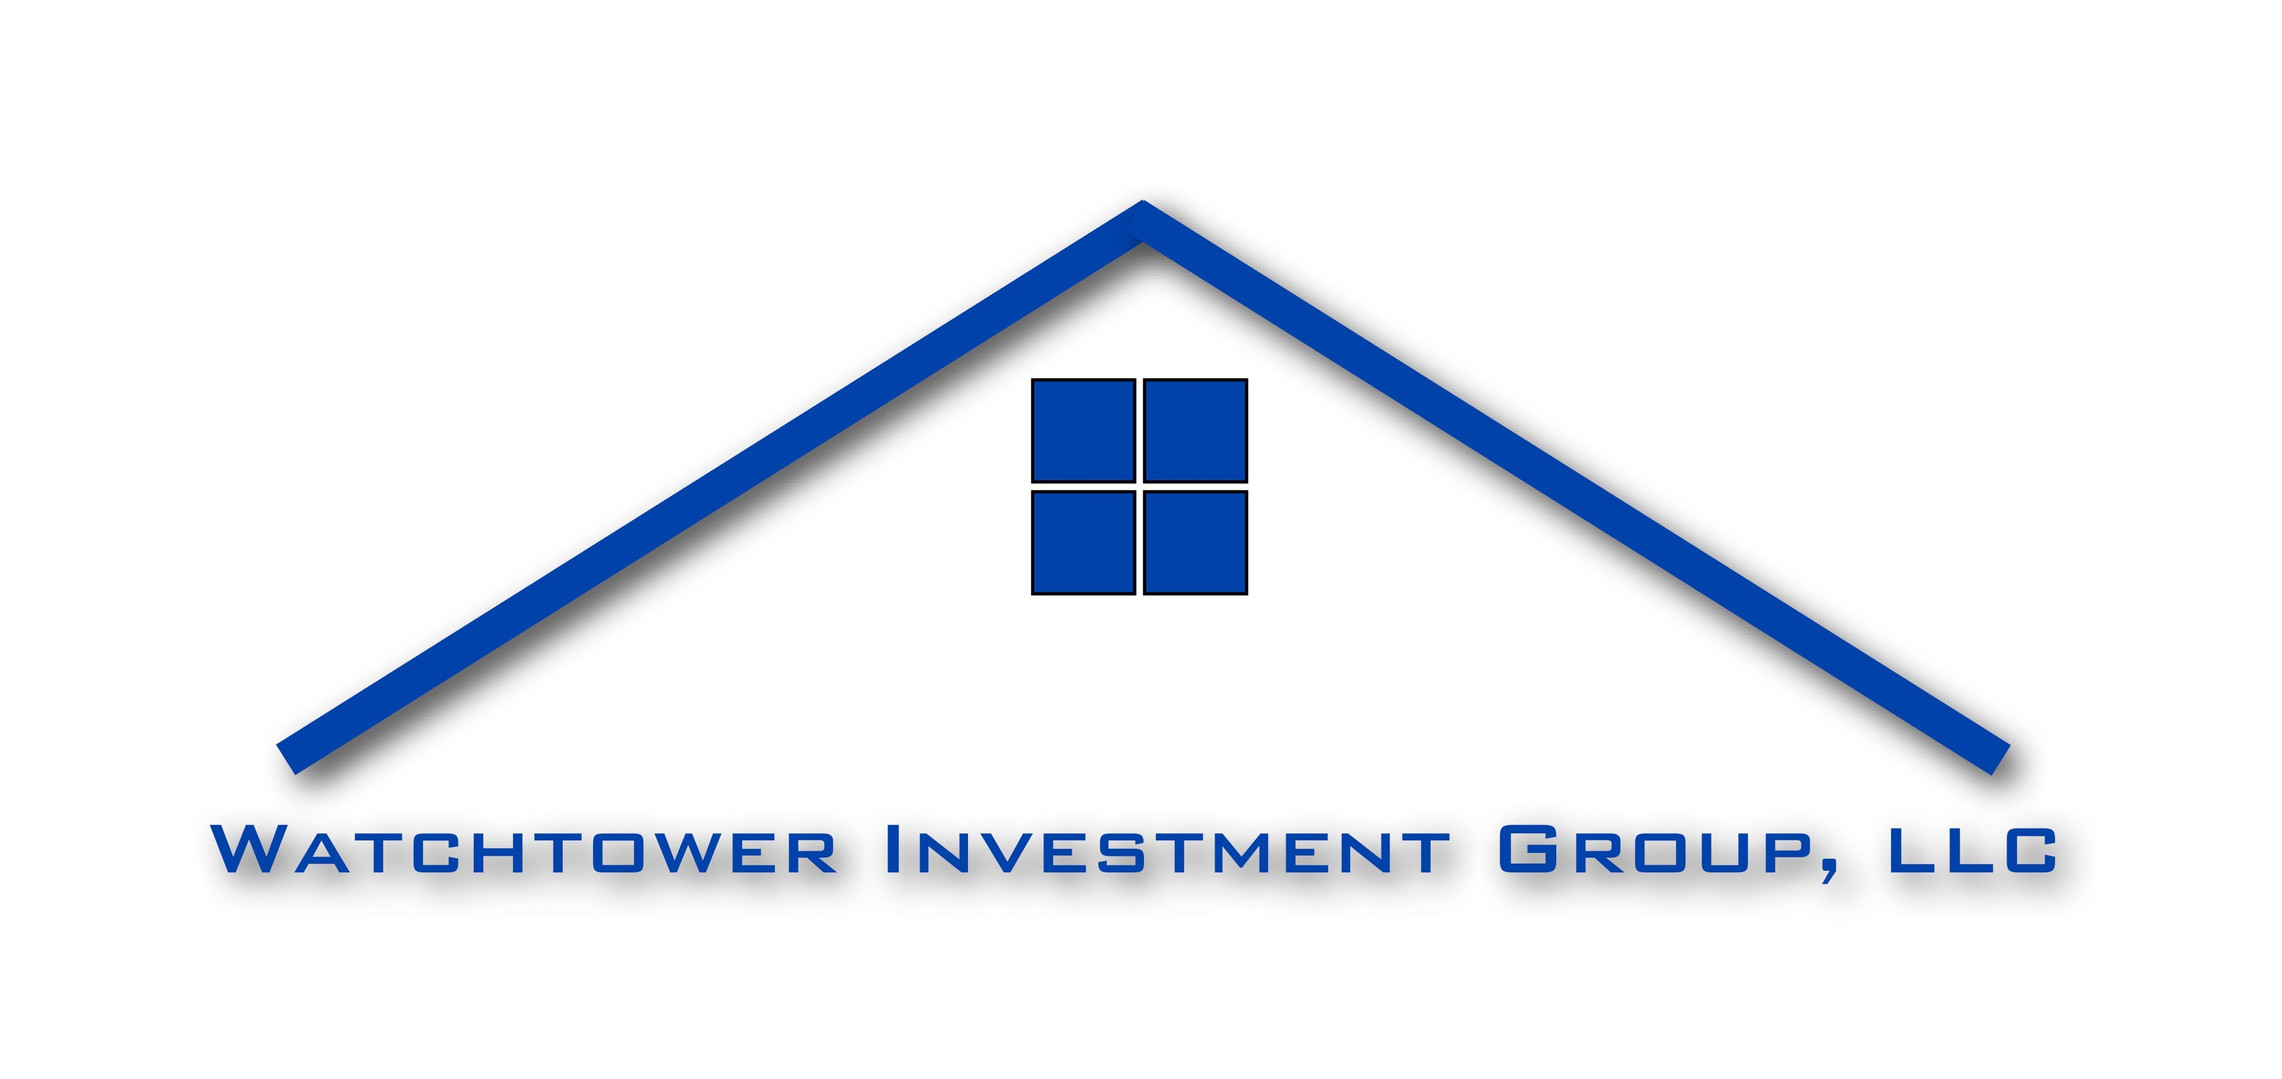 Watchtower Investment Group